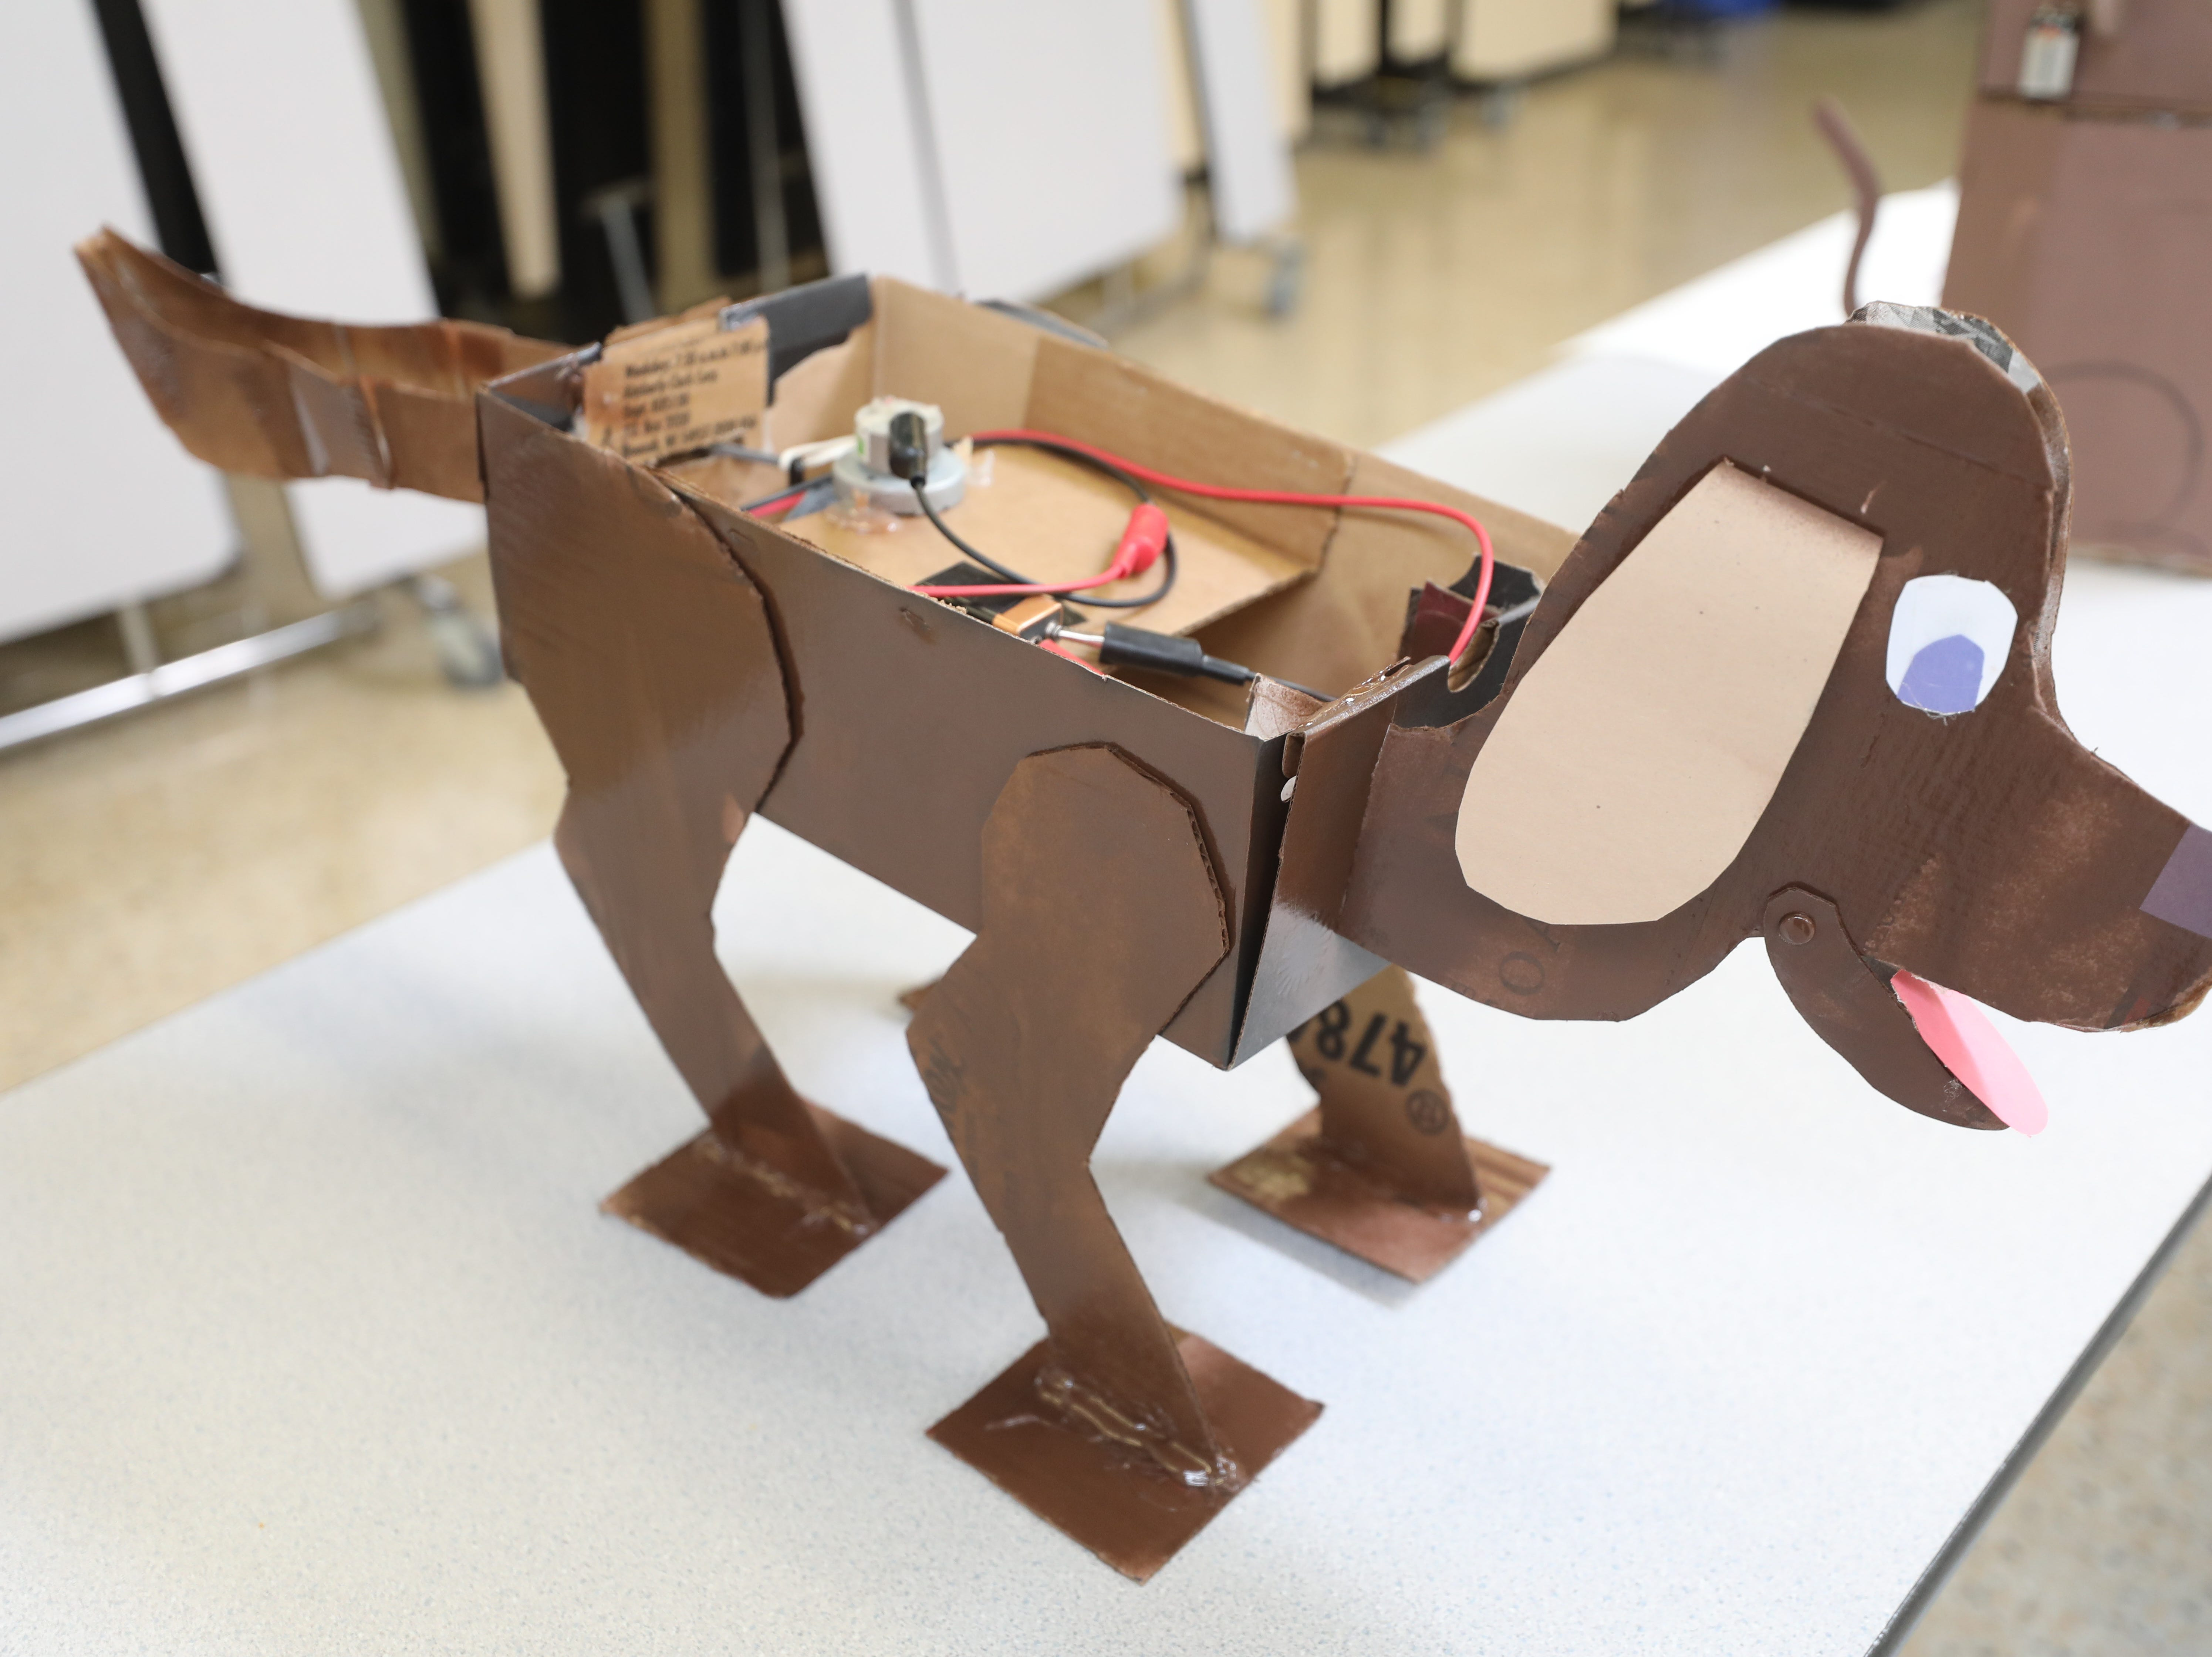 This cardboard dog is part of the Cardboard Animal-a-thon at Ramapo HS where engineering students work on and display their projects, making mechanical animals out of cardboard. They also helped younger students work on projects during the event held at Ramapo HS on February 9, 2019.